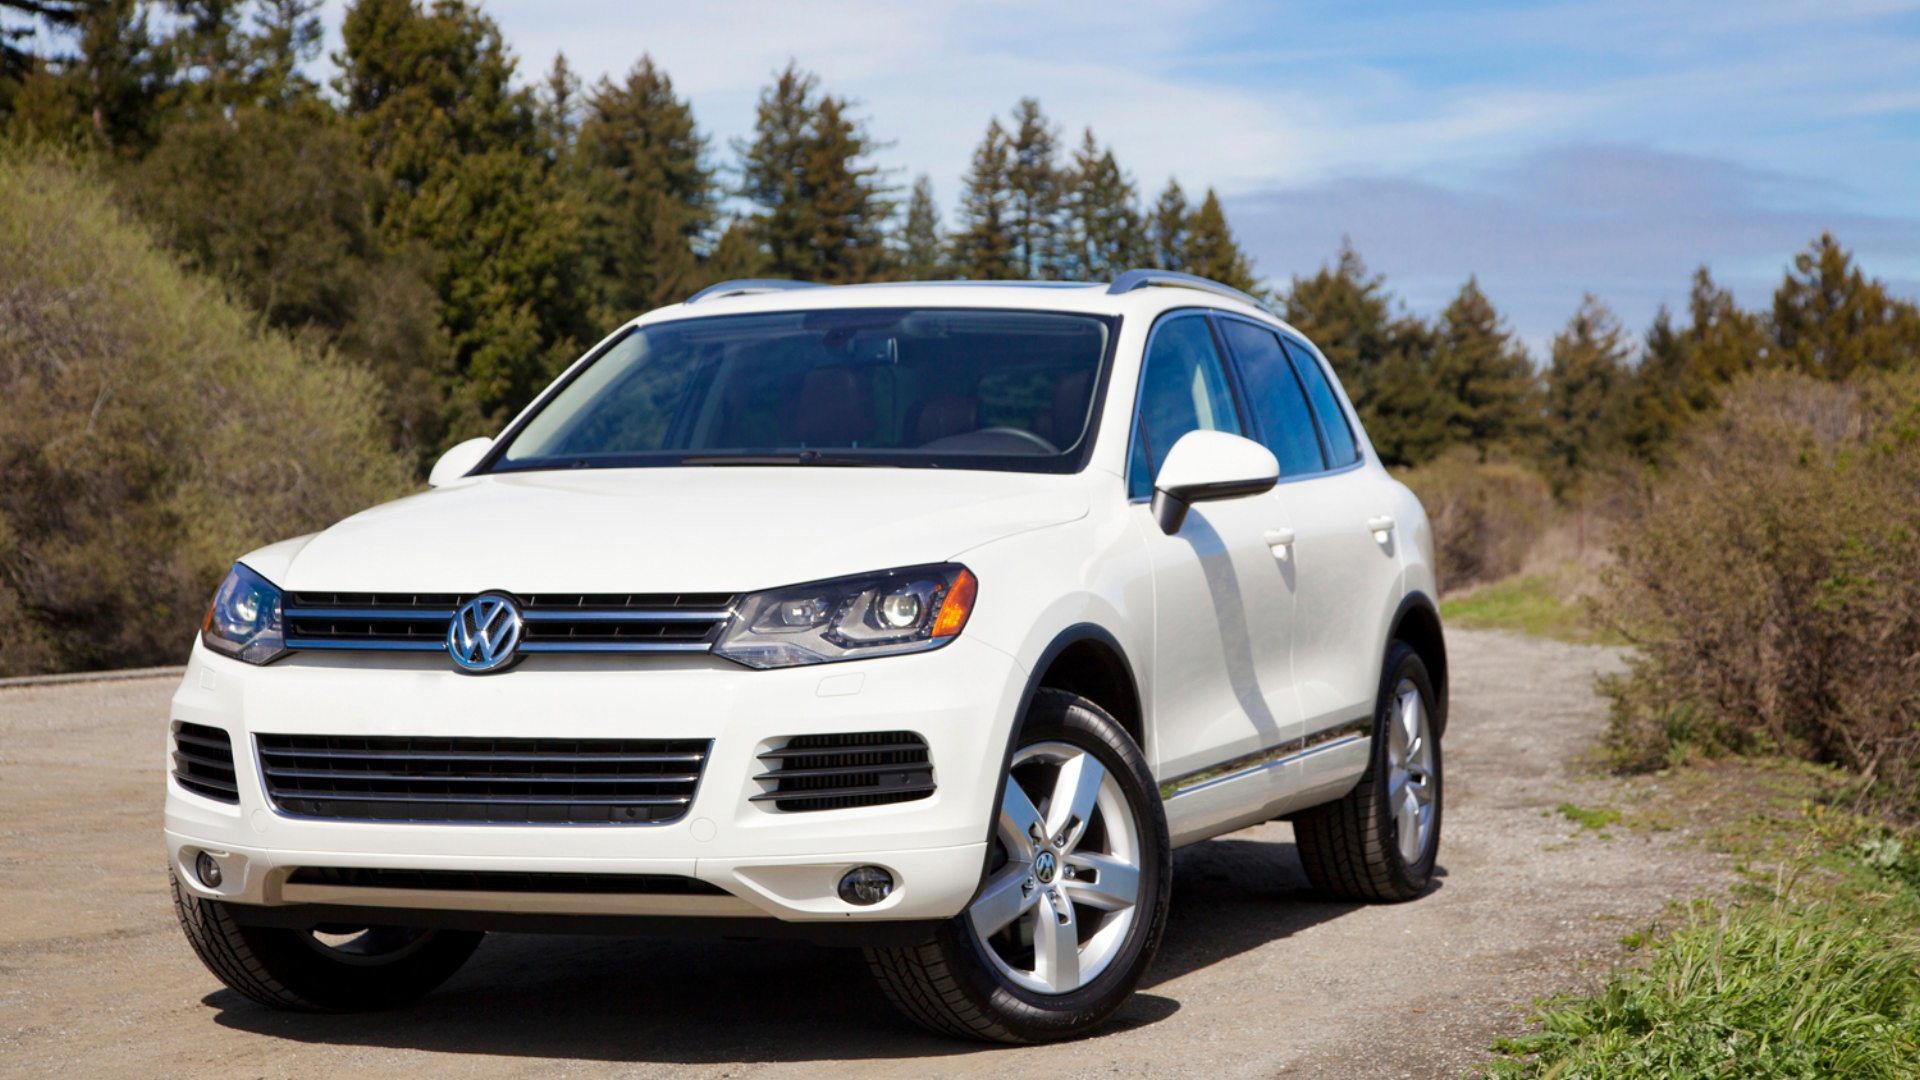 Volkswagen Touareg Hd Wallpapers